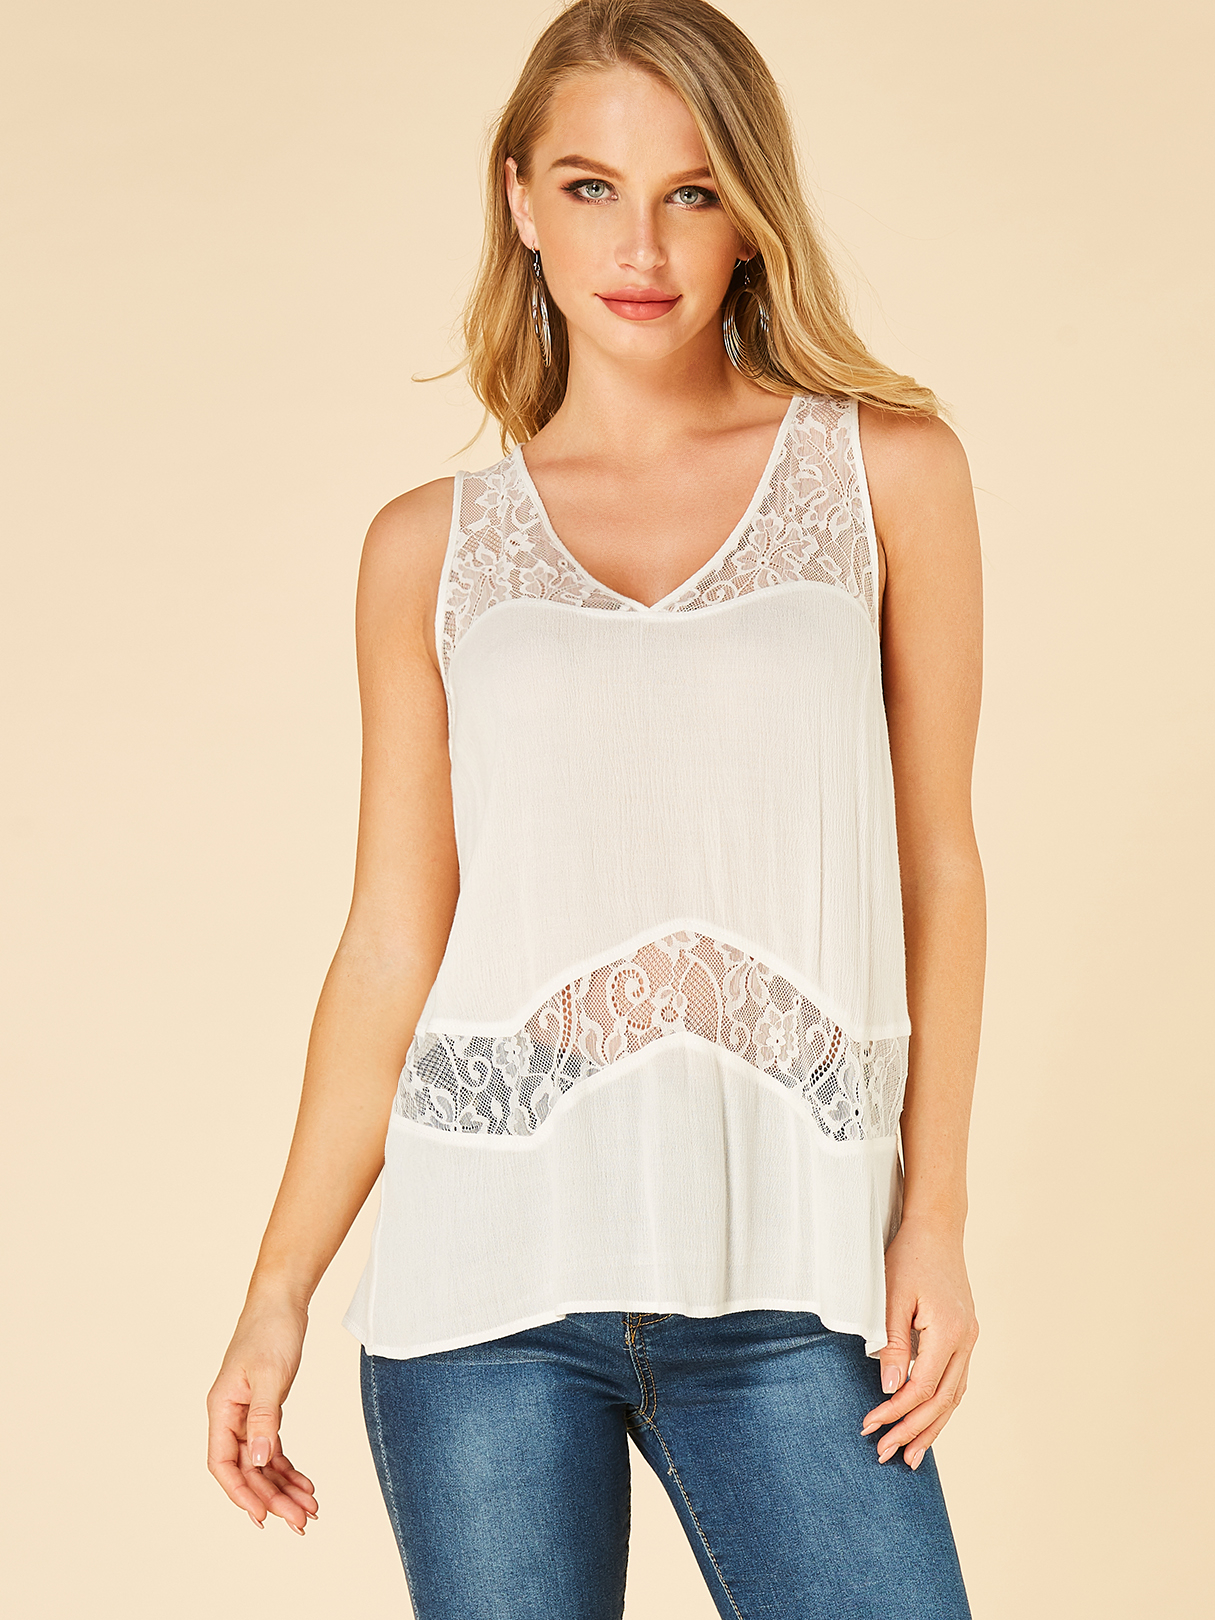 White lace V-neck See Through Tank Top